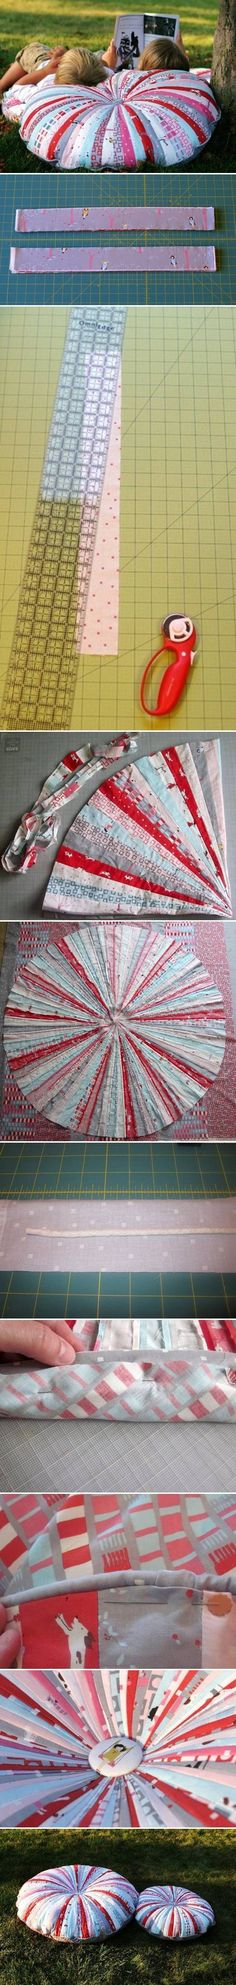 DIY Patchwork Round Pillow DIY Projects | UsefulDIY.com